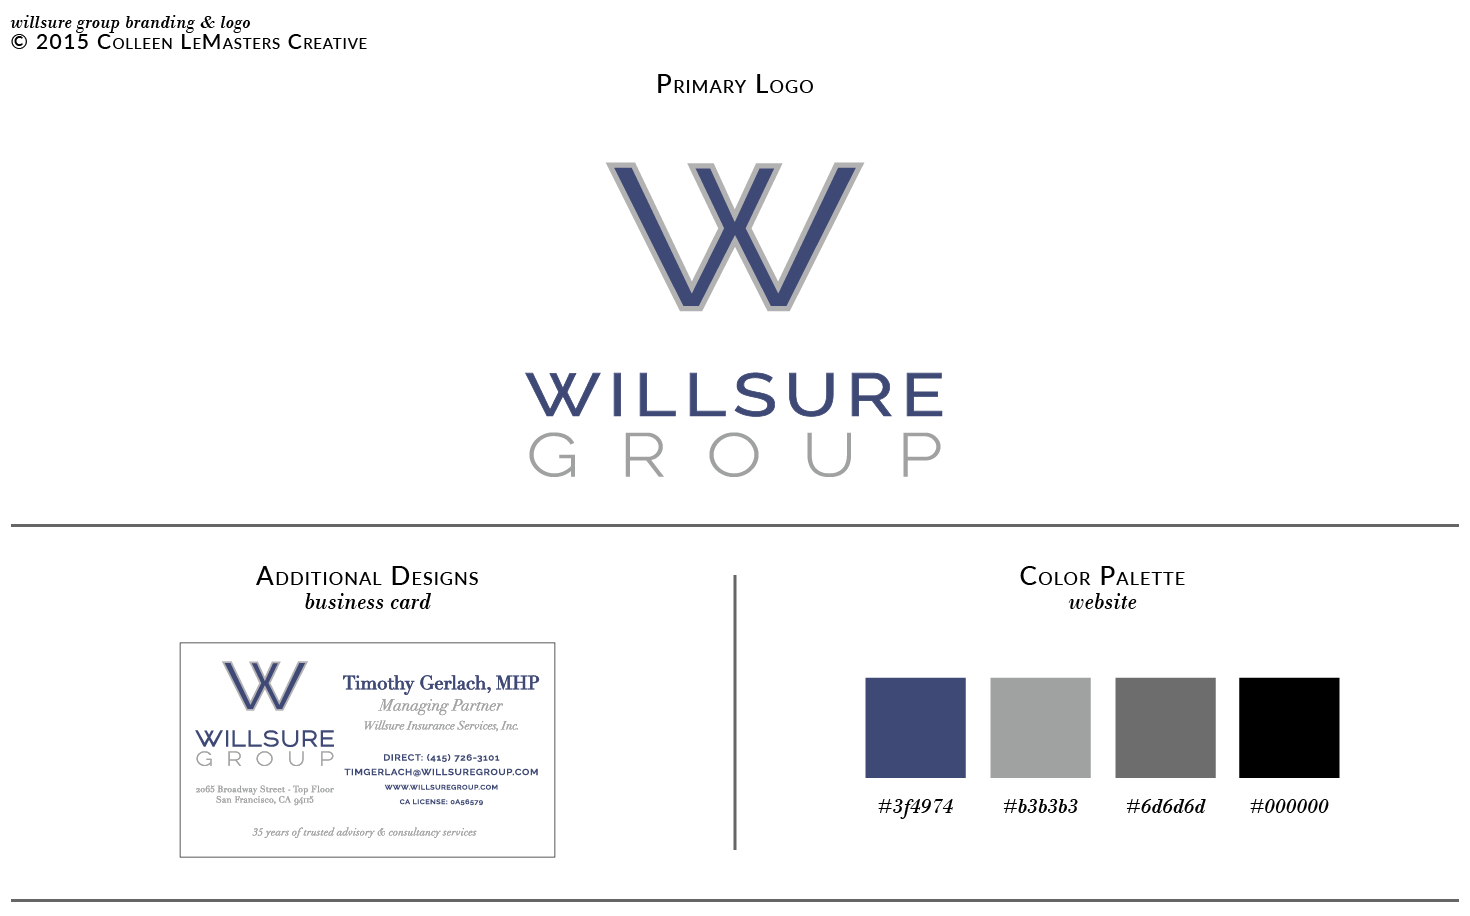 Willsure Group brand identity